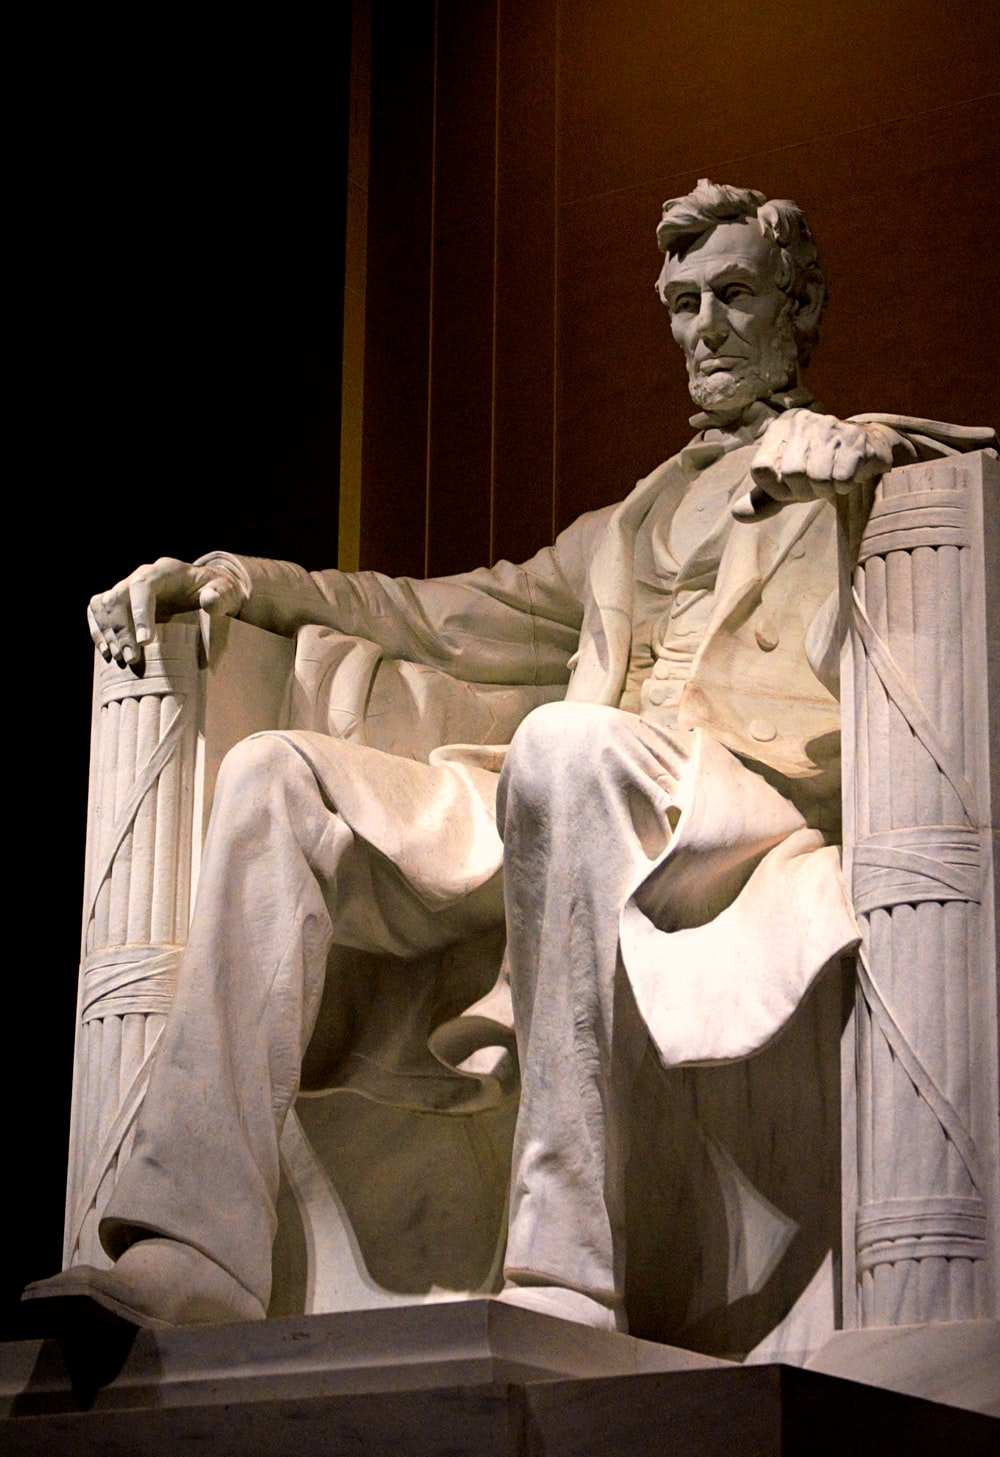 Abraham lincol sitting on chair statue